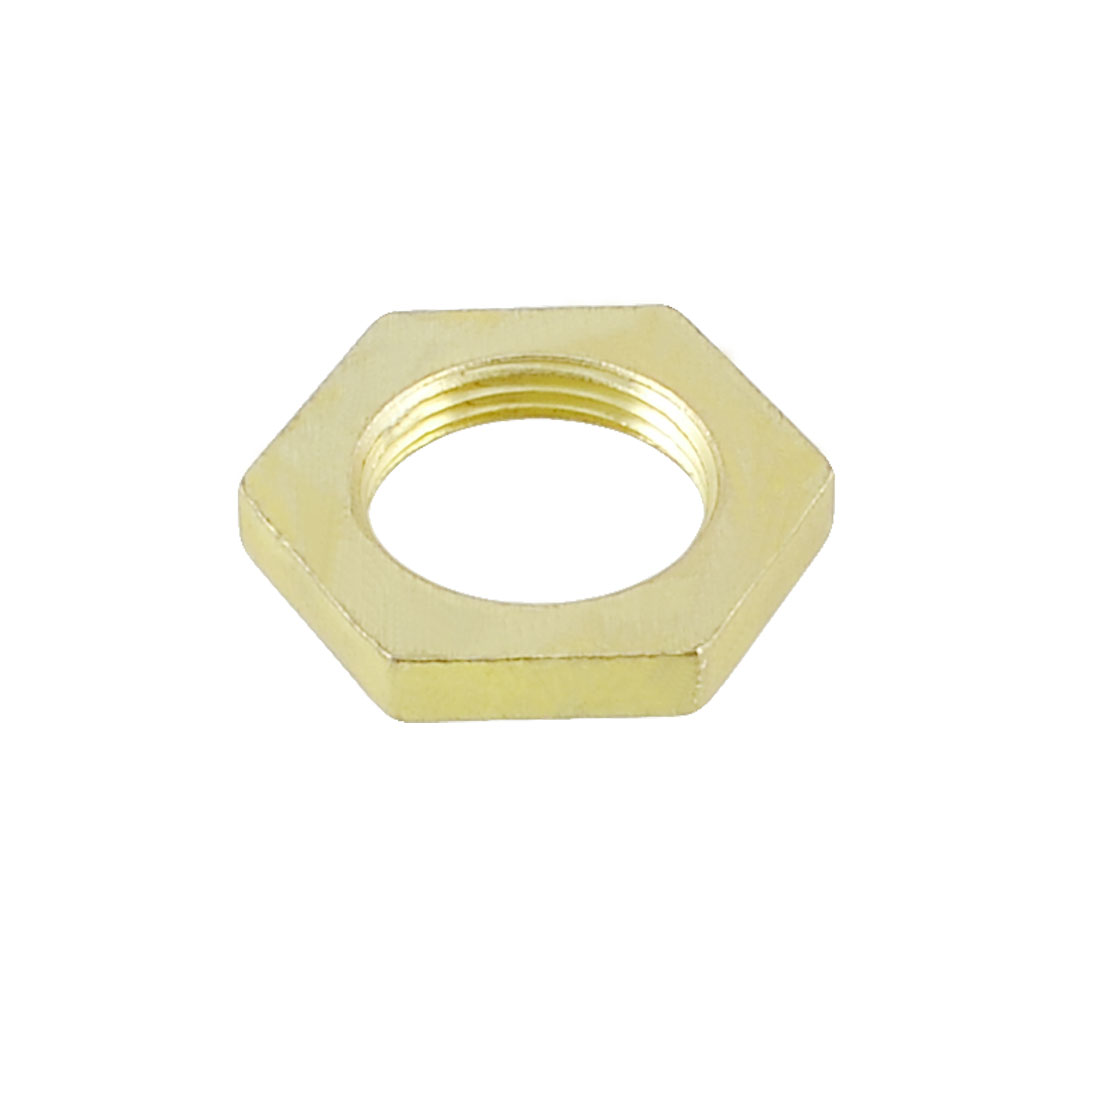 1-2-PT-22mm-Dia-Threaded-Brass-Hex-Screw-Nut-Fastener-for-Washing-Machine